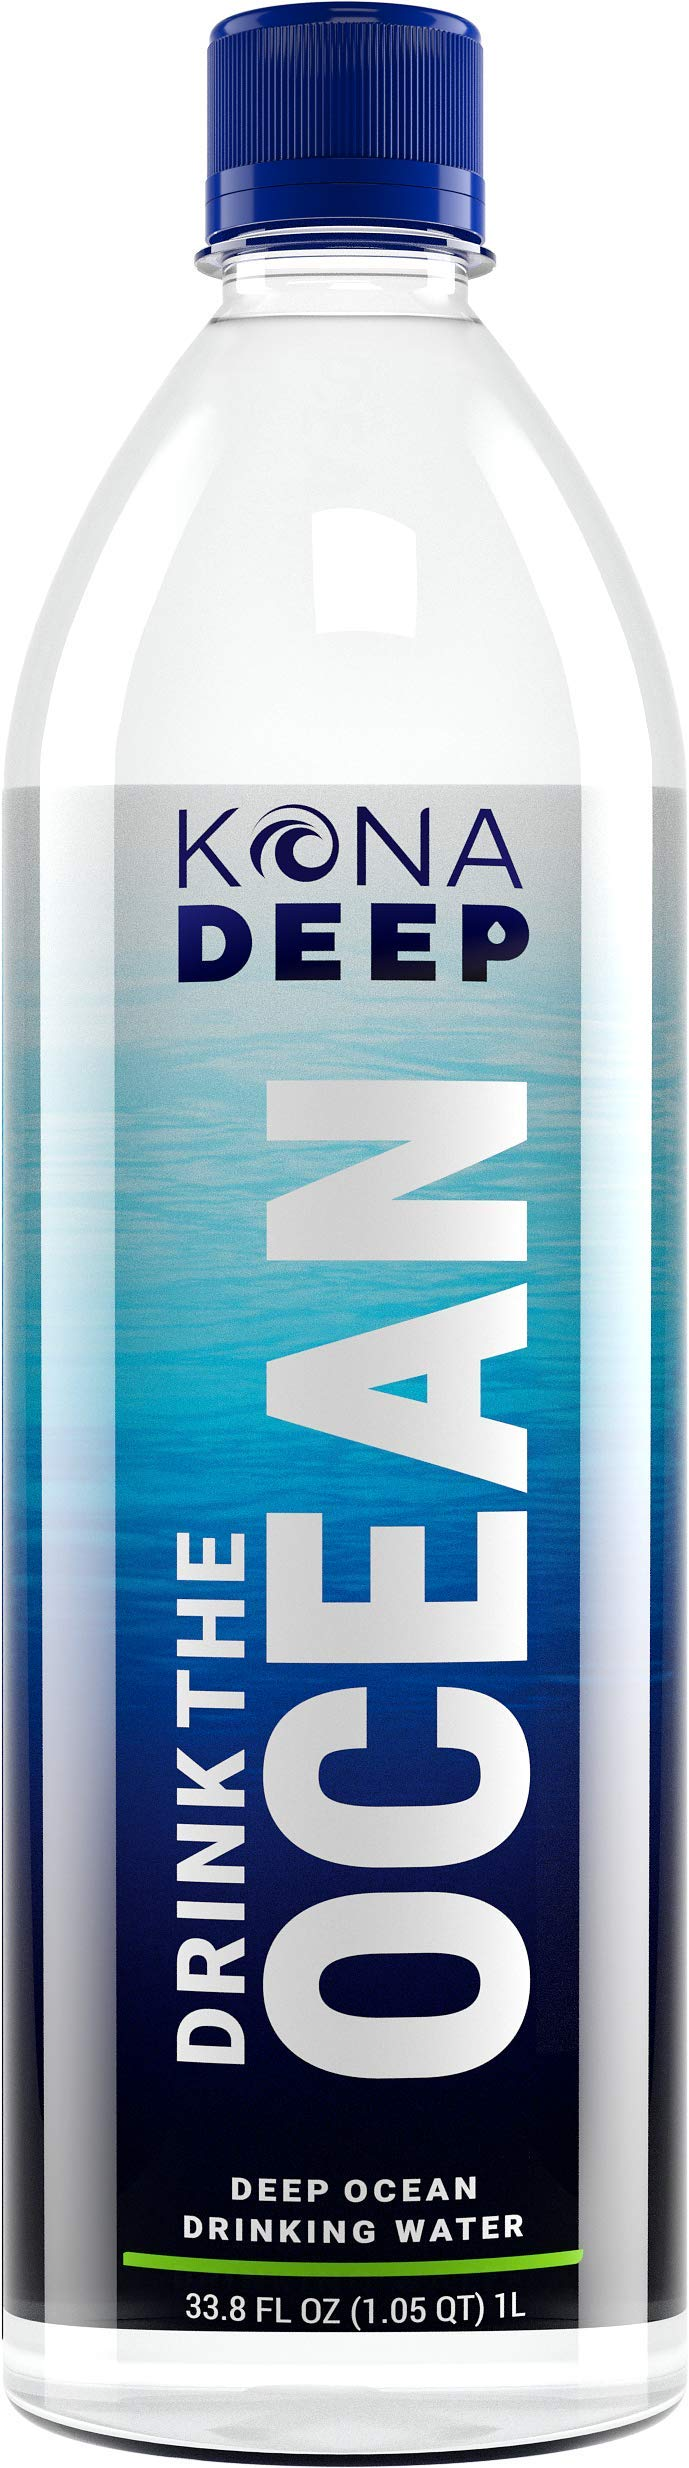 Kona Deep Pure Deep Ocean Electrolyte Mineral Water Bottles (1 L), 12Count by Kona Deep